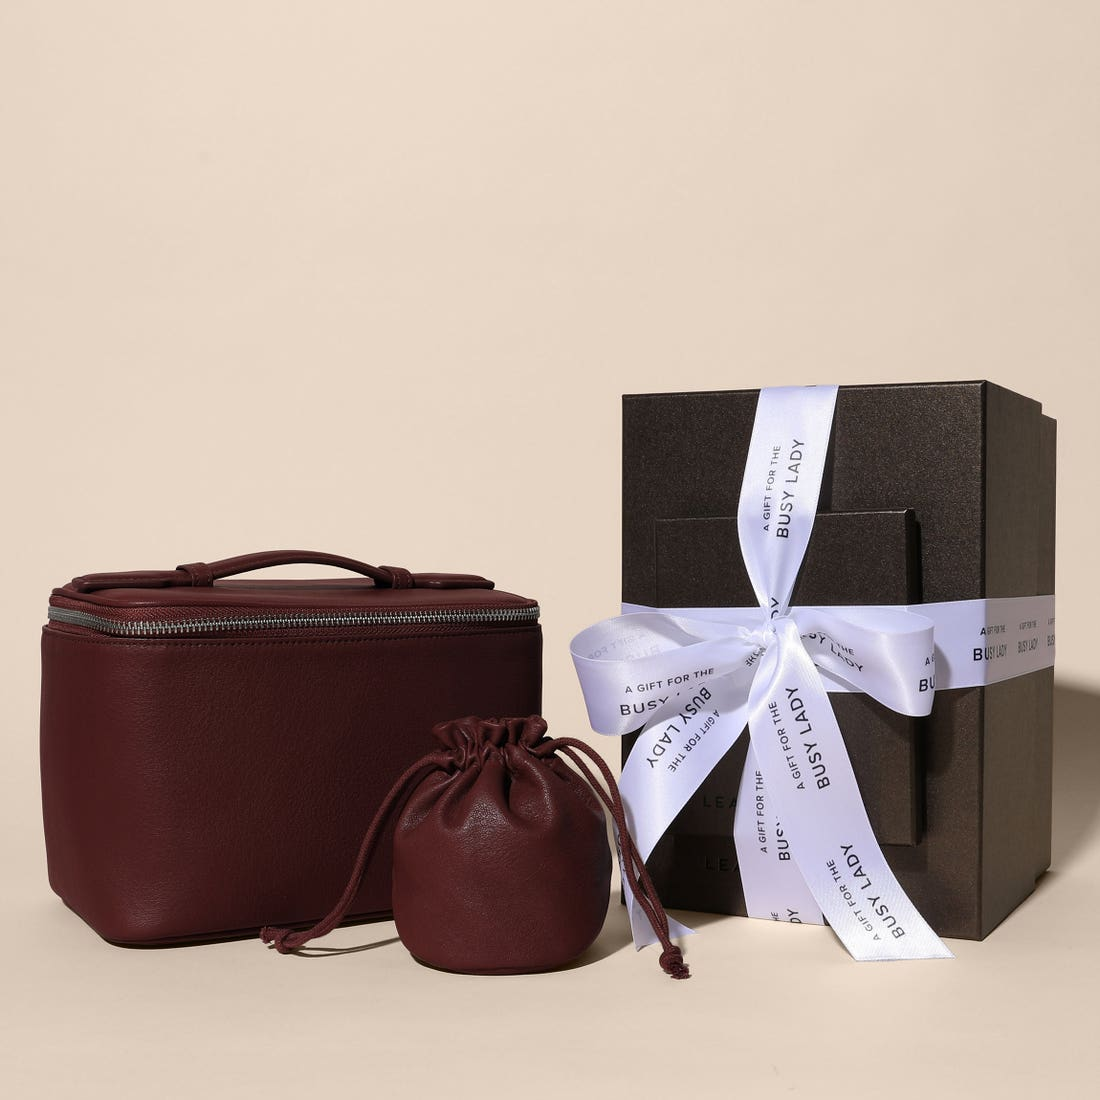 A Gift for the Busy Lady